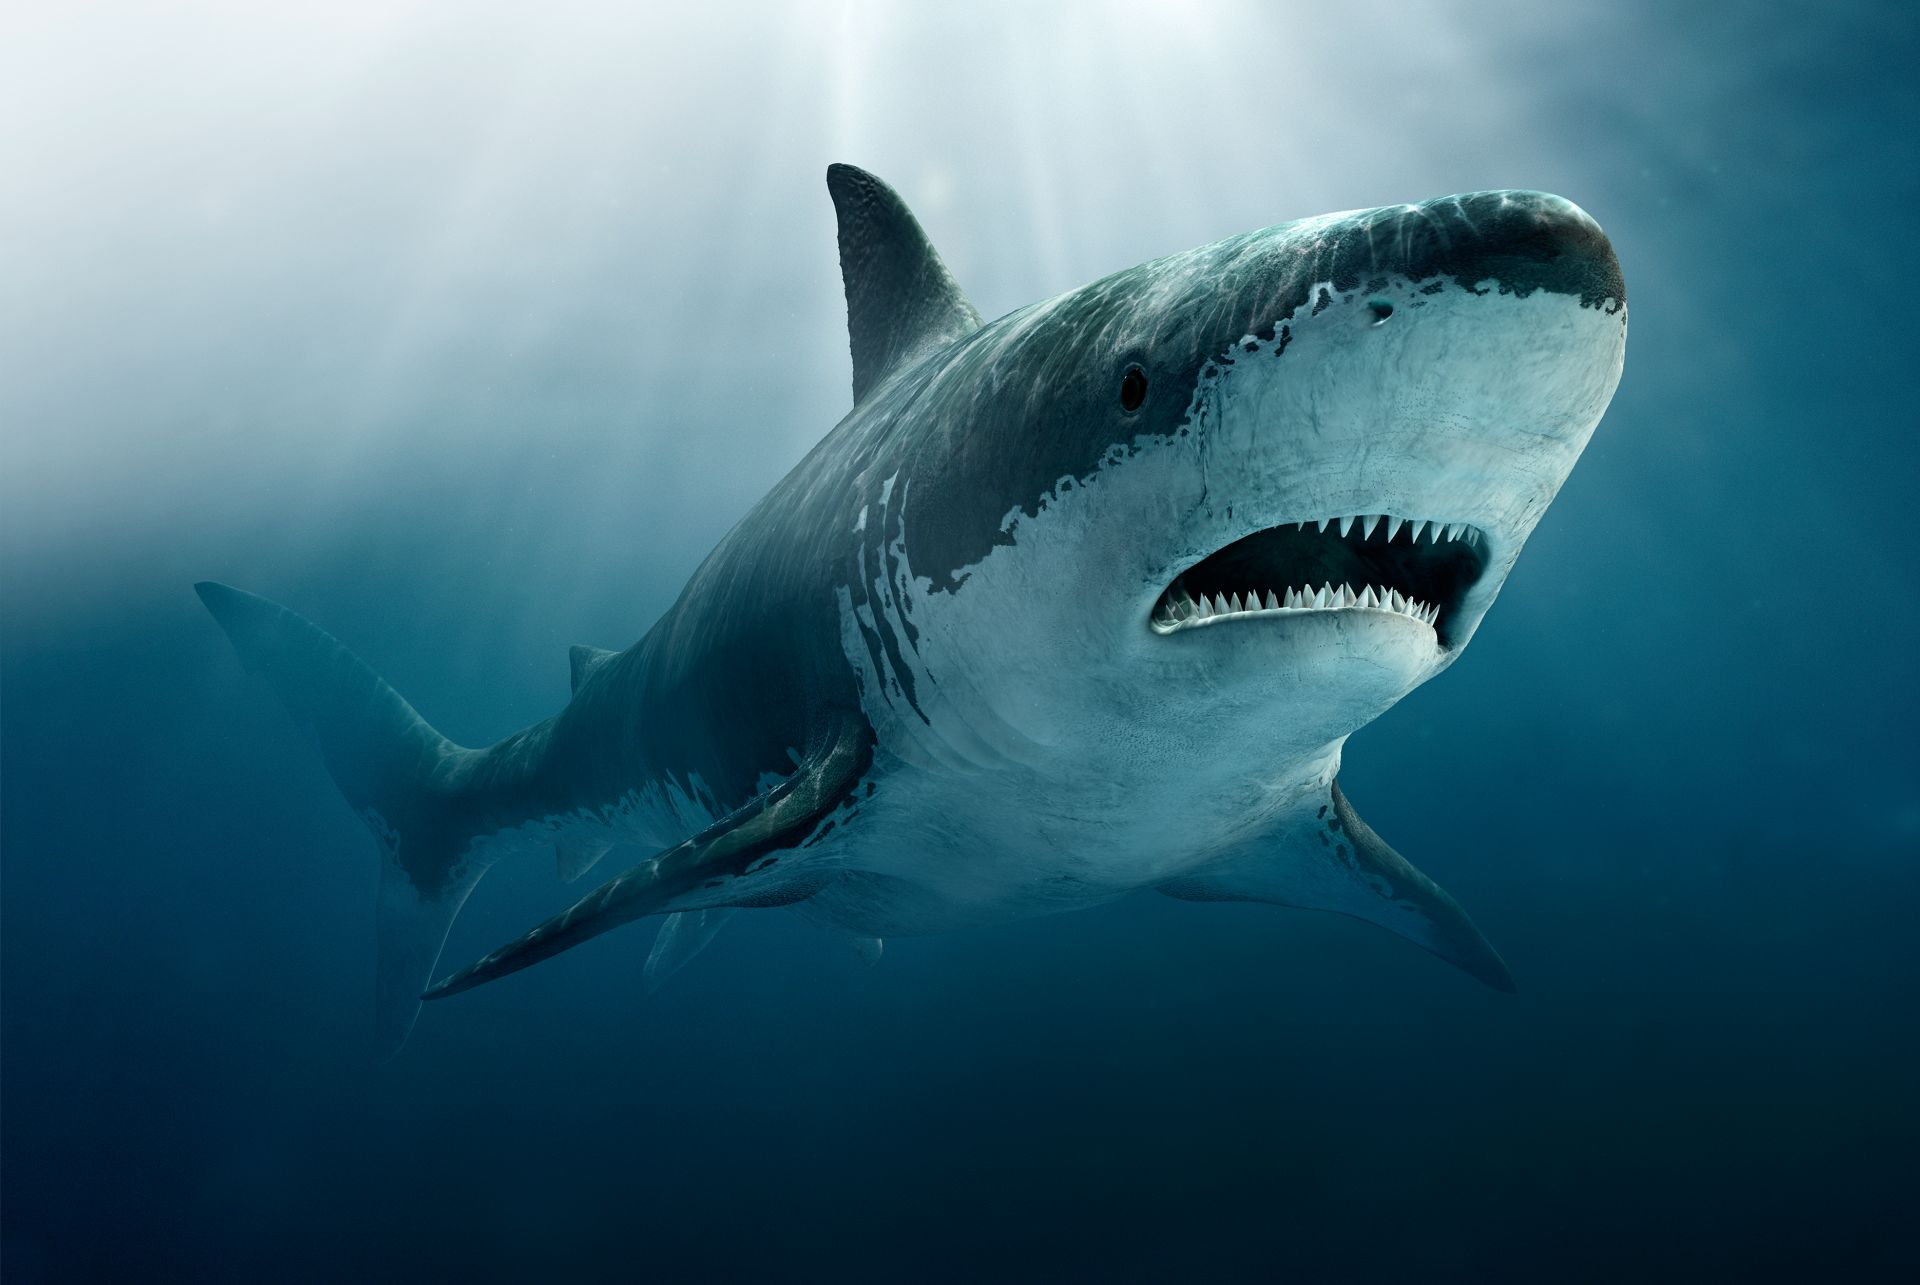 Great White Shark Size | Megatooth Shark Facts Megatooth Shark Size Dk Find Out